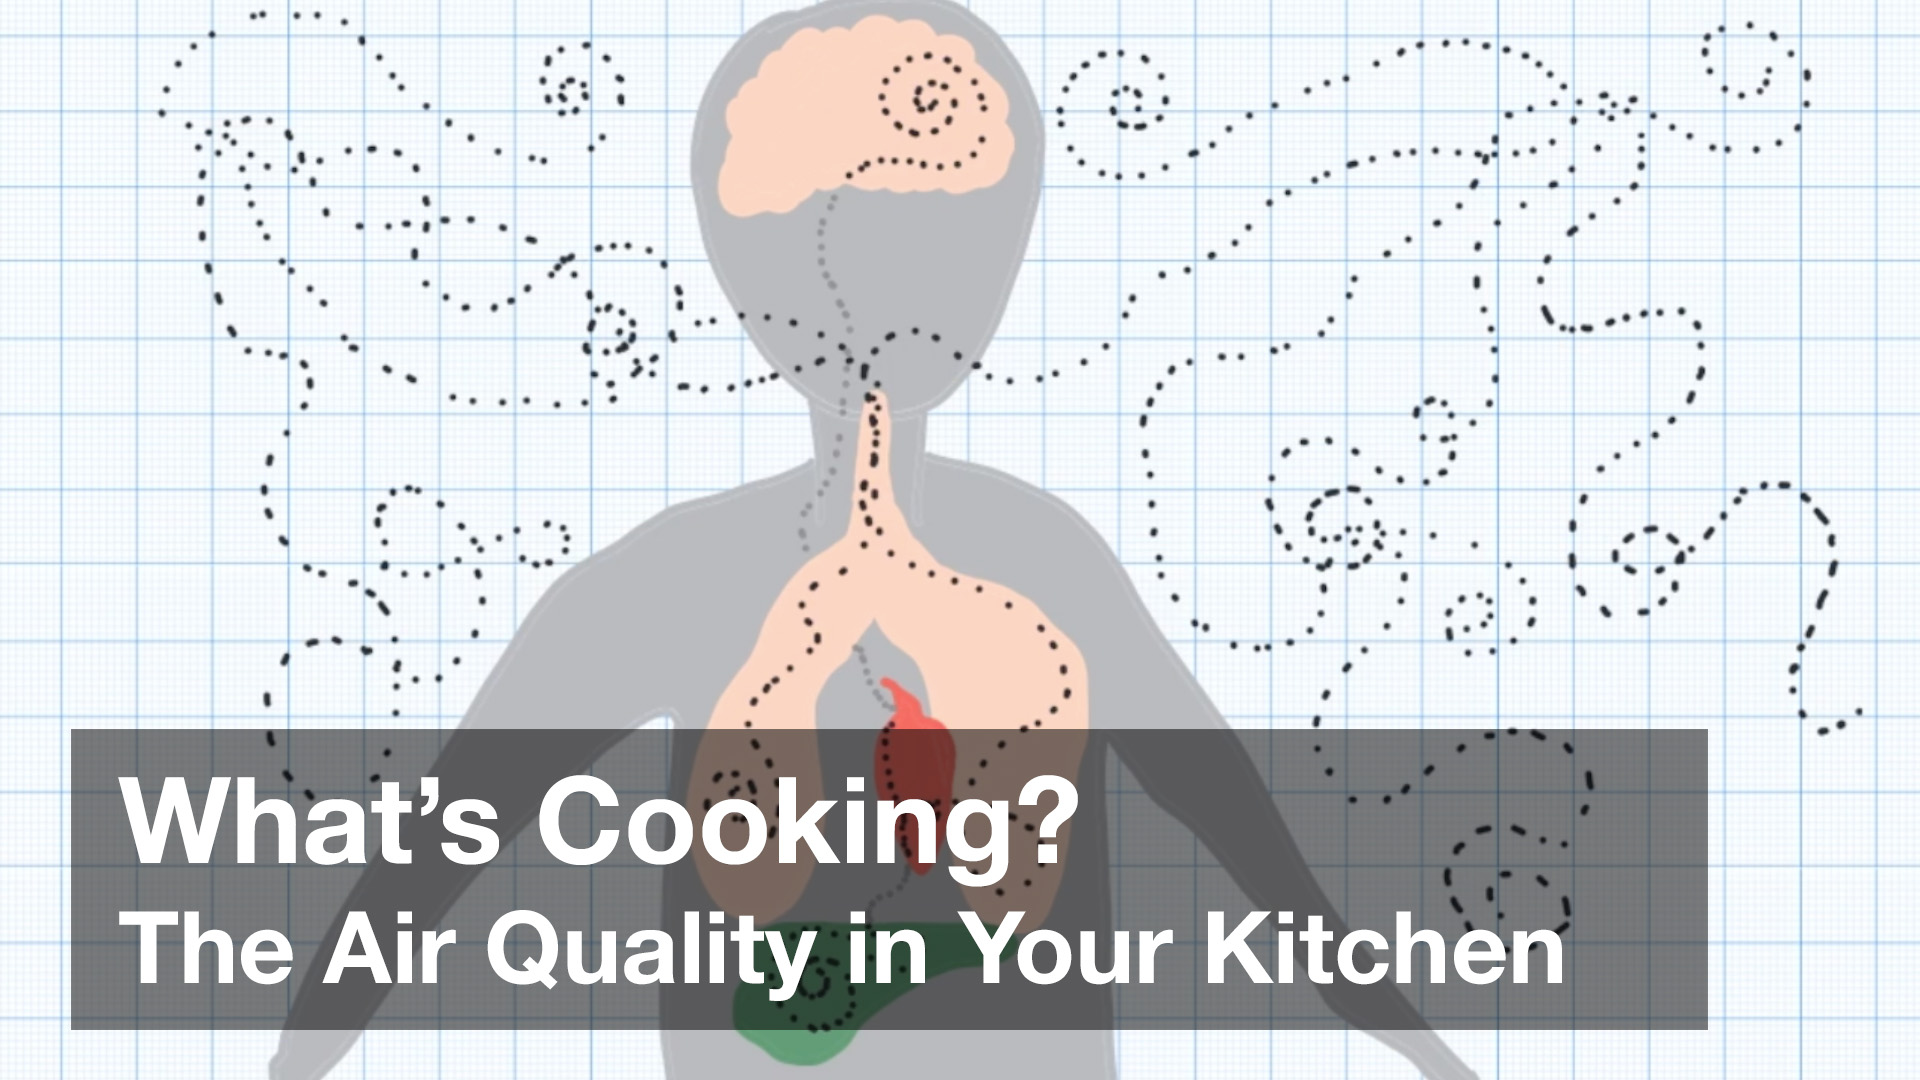 What's Cooking? The air quality in your kitchen